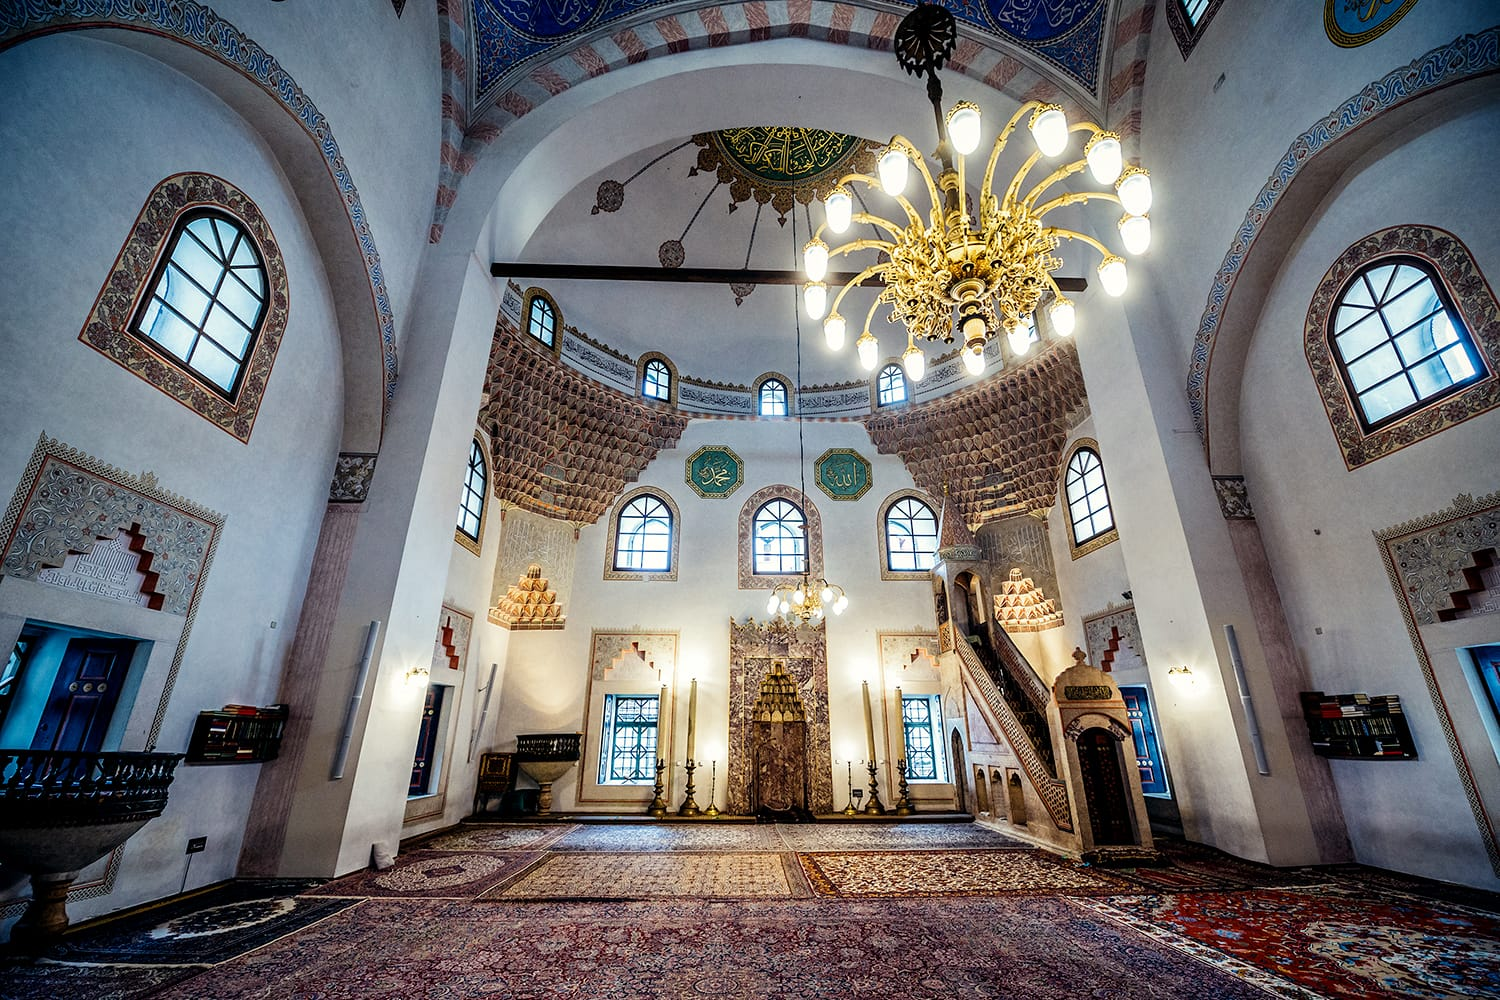 Interior of 16th century Ottoman style Gazi Husrev-beg Mosque located at Bascarsija area in Sarajevo, Bosnia and Herzegovina